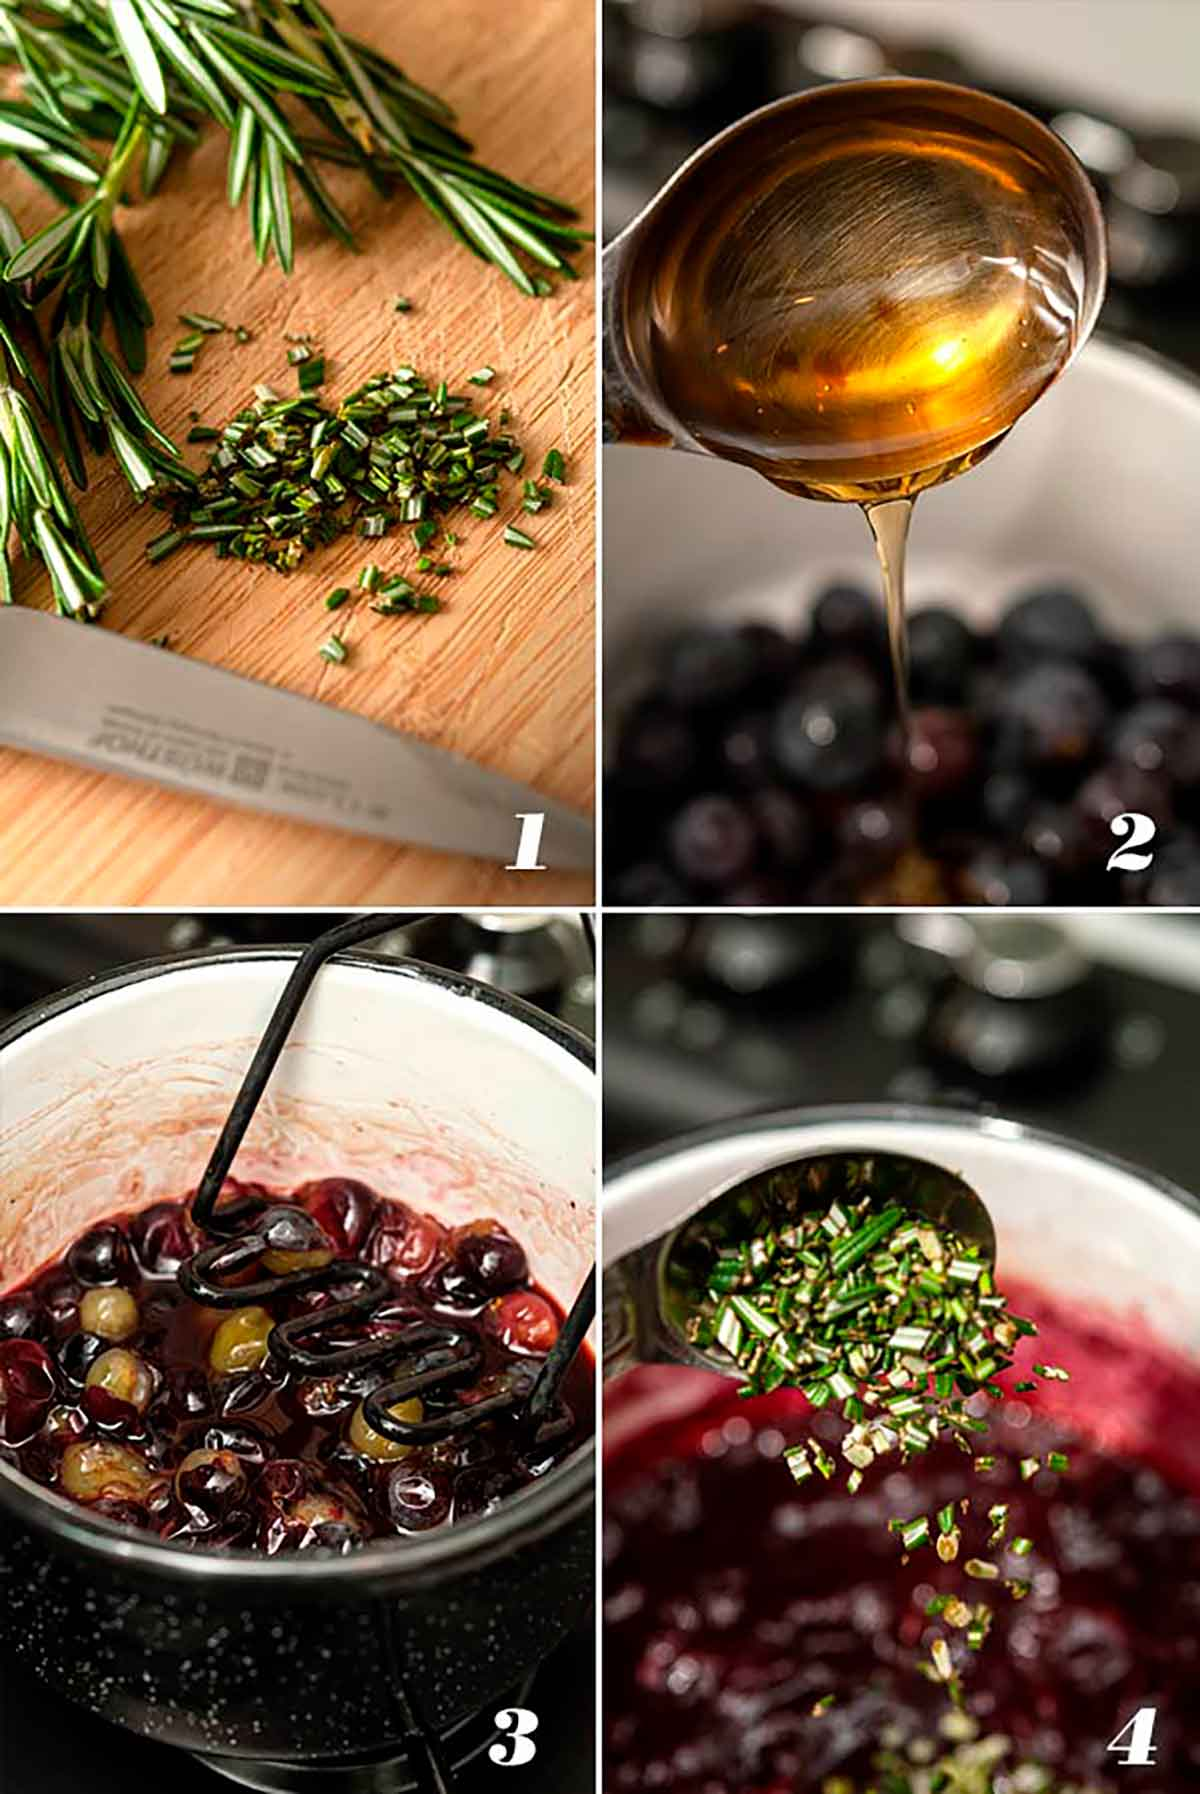 A collage of 4 images showing how to make concord grape reduction.